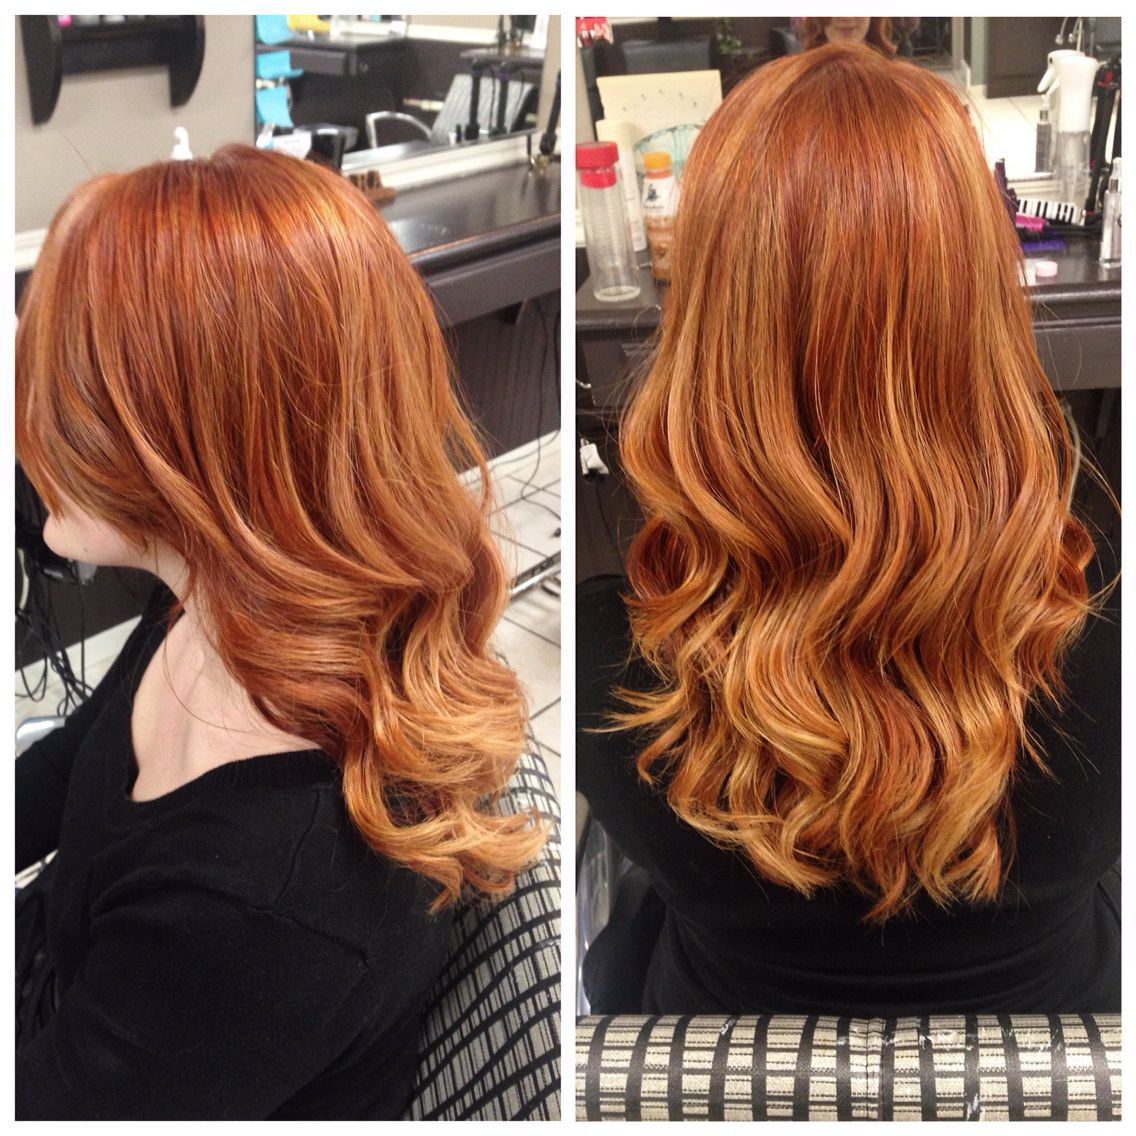 Stunning Natural Looking Red Hair With Golden Balayage Highlights